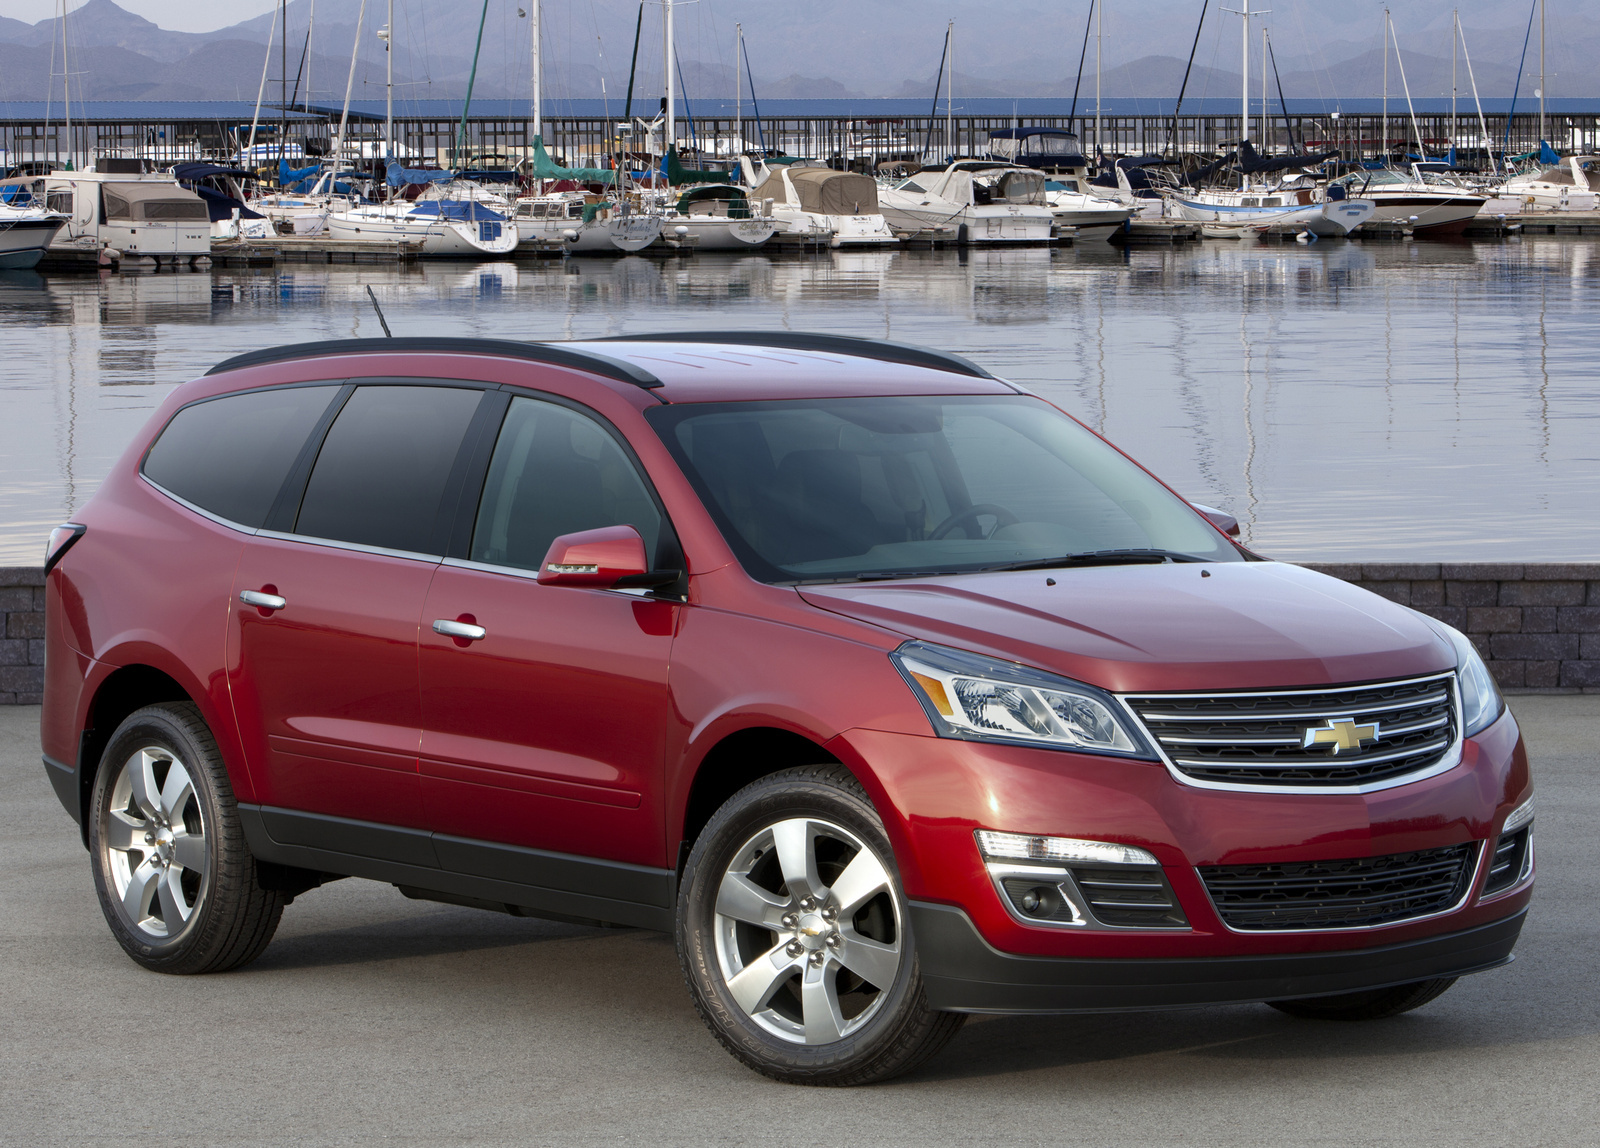 Pictures of chevrolet suvs Chevy Crossover SUVs: Seating for 5-8 Chevrolet